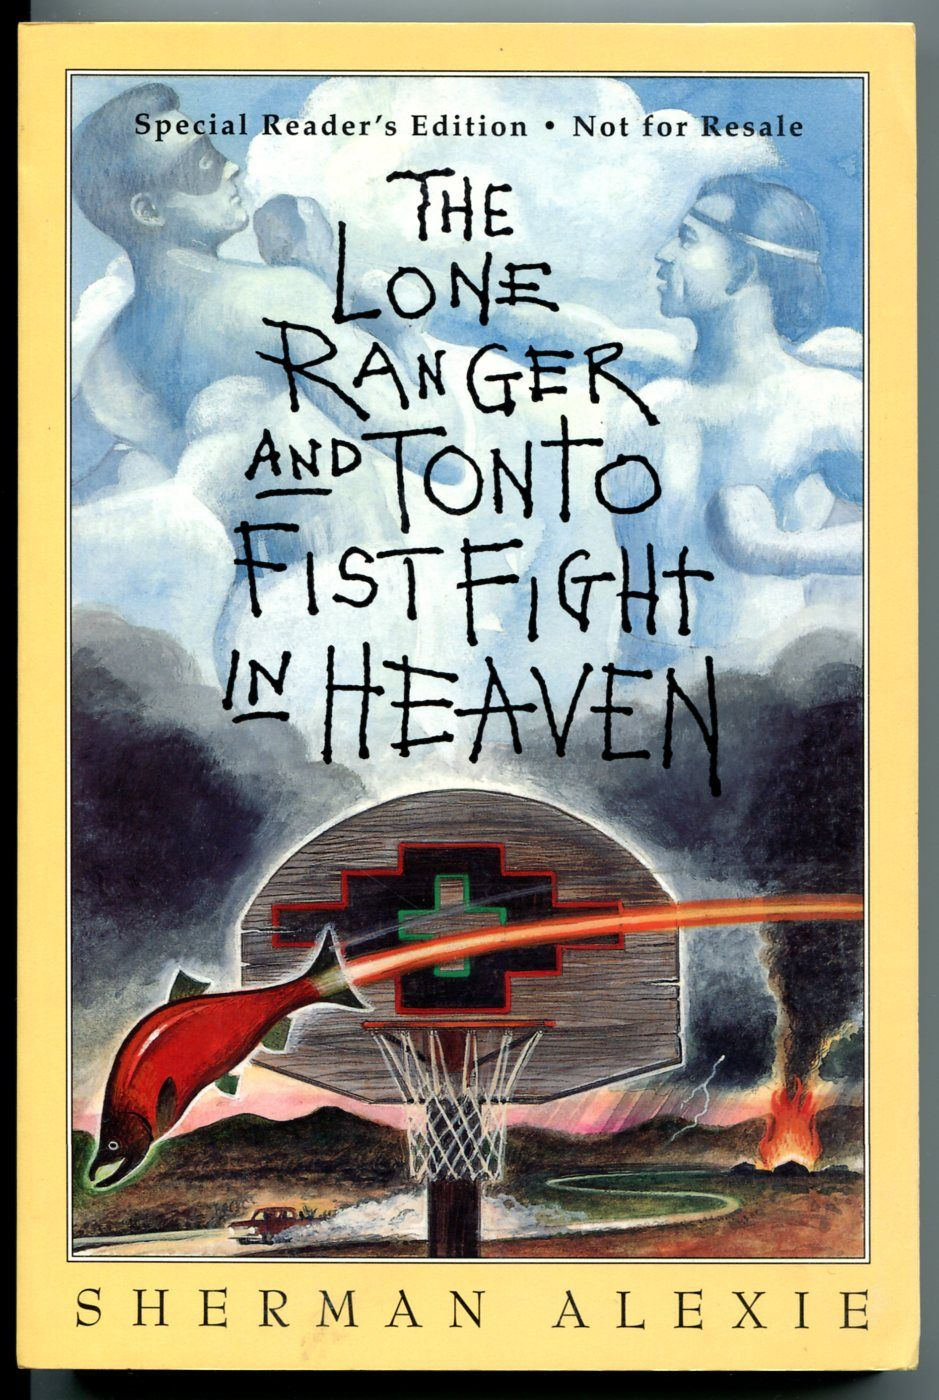 a literary analysis of the lone ranger and tonto fistfight in heaven by sherman alexie Two part series analyzing sherman alexie's short story collection tonto and the lone ranger fistfight in heaven this installment focuses on alexie's depiction of issues within contemporary reservation life.